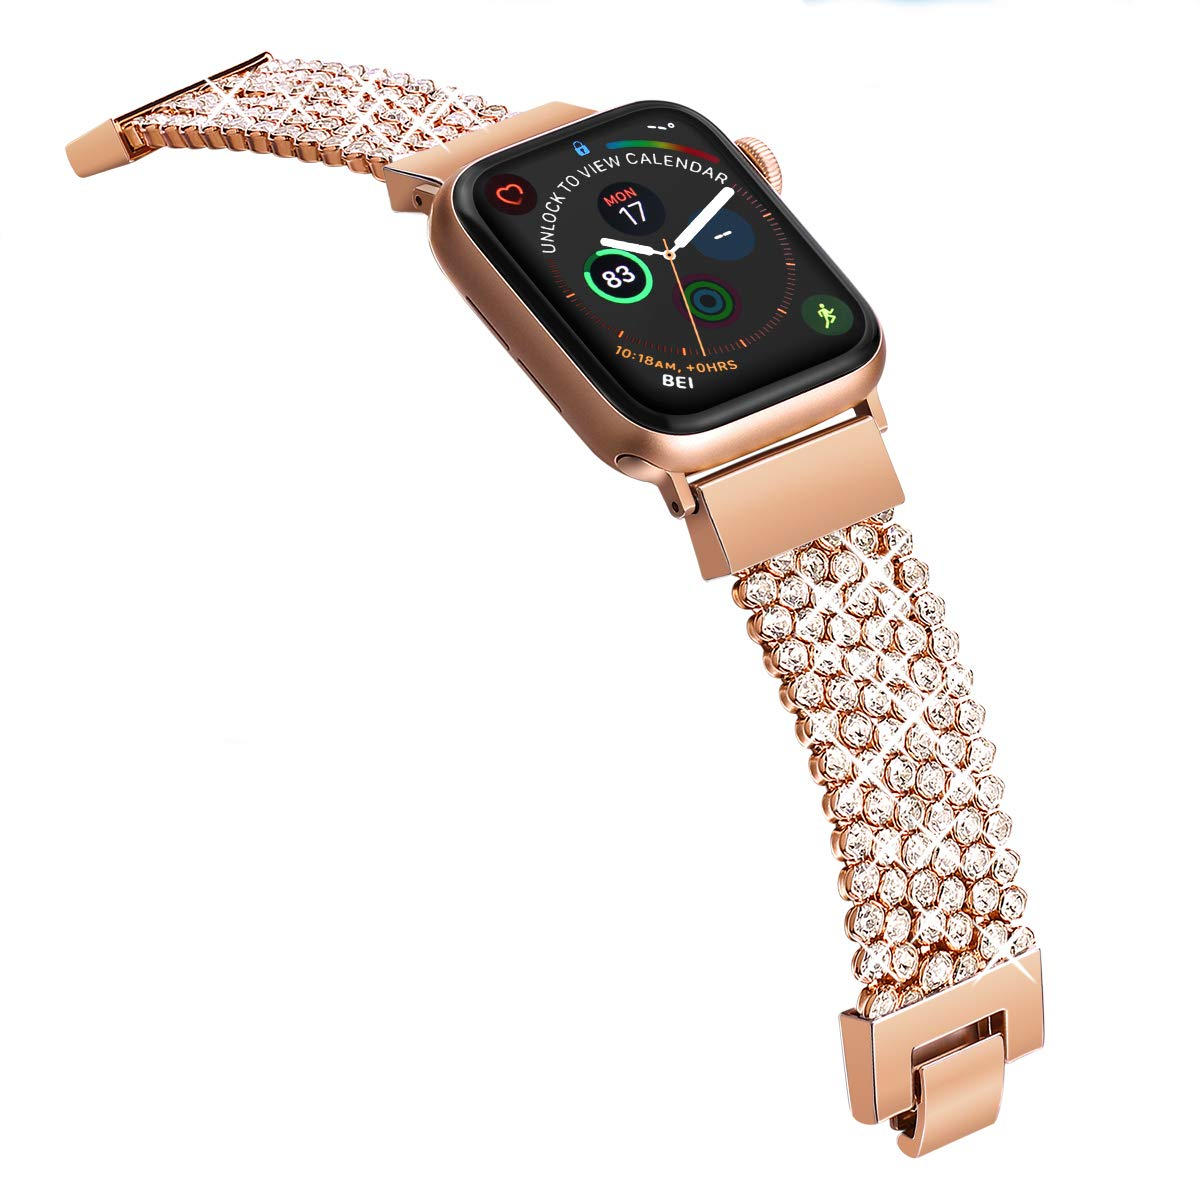 b7533e60e Compatible Apple Watch Band 42mm for Women Girls, FresherAcc Bling CZ  Crystal Diamond Loop Replacement Strap for iWatch Series 1, 2, 3, Sport  Edition Nike+ ...